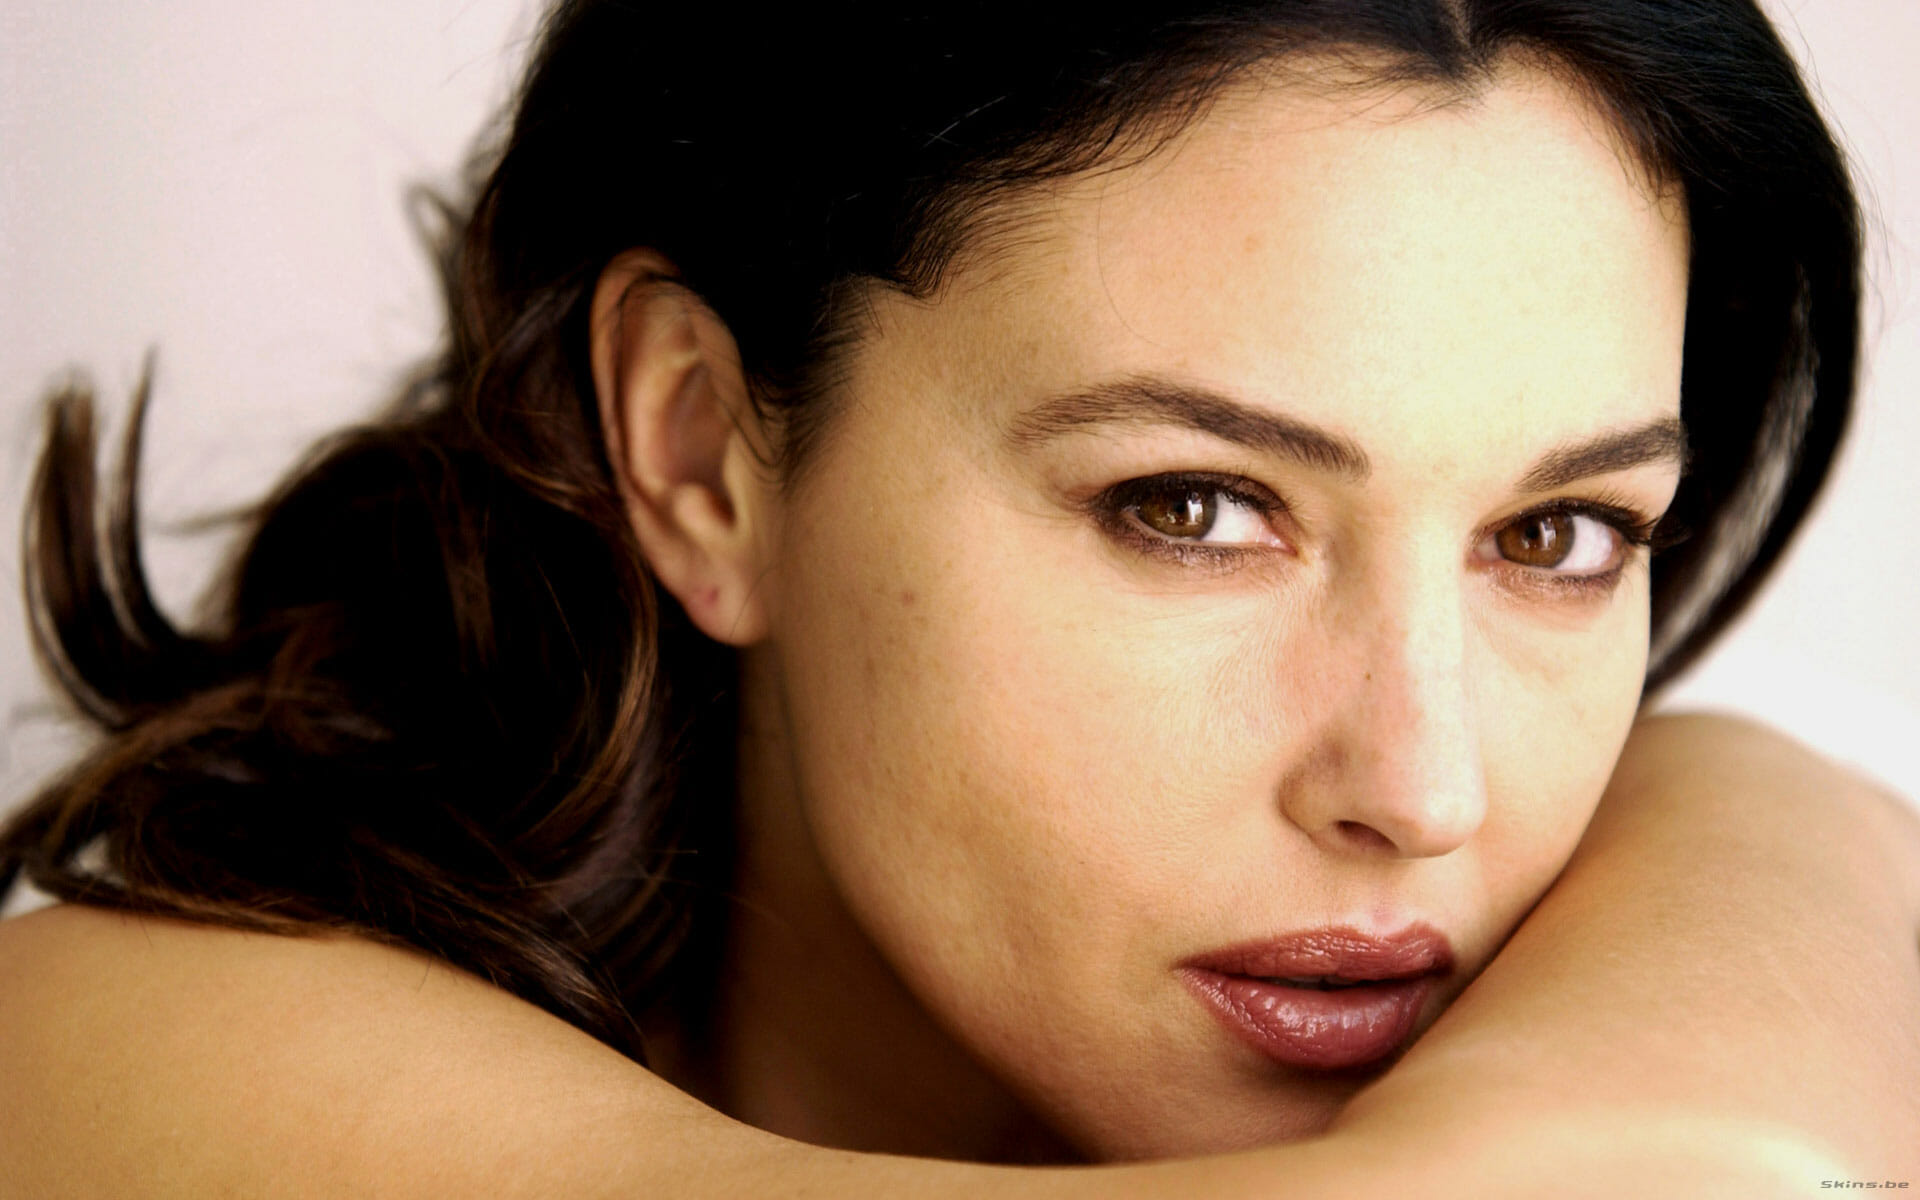 Celeb Secrets: How To Look Great Without Makeup